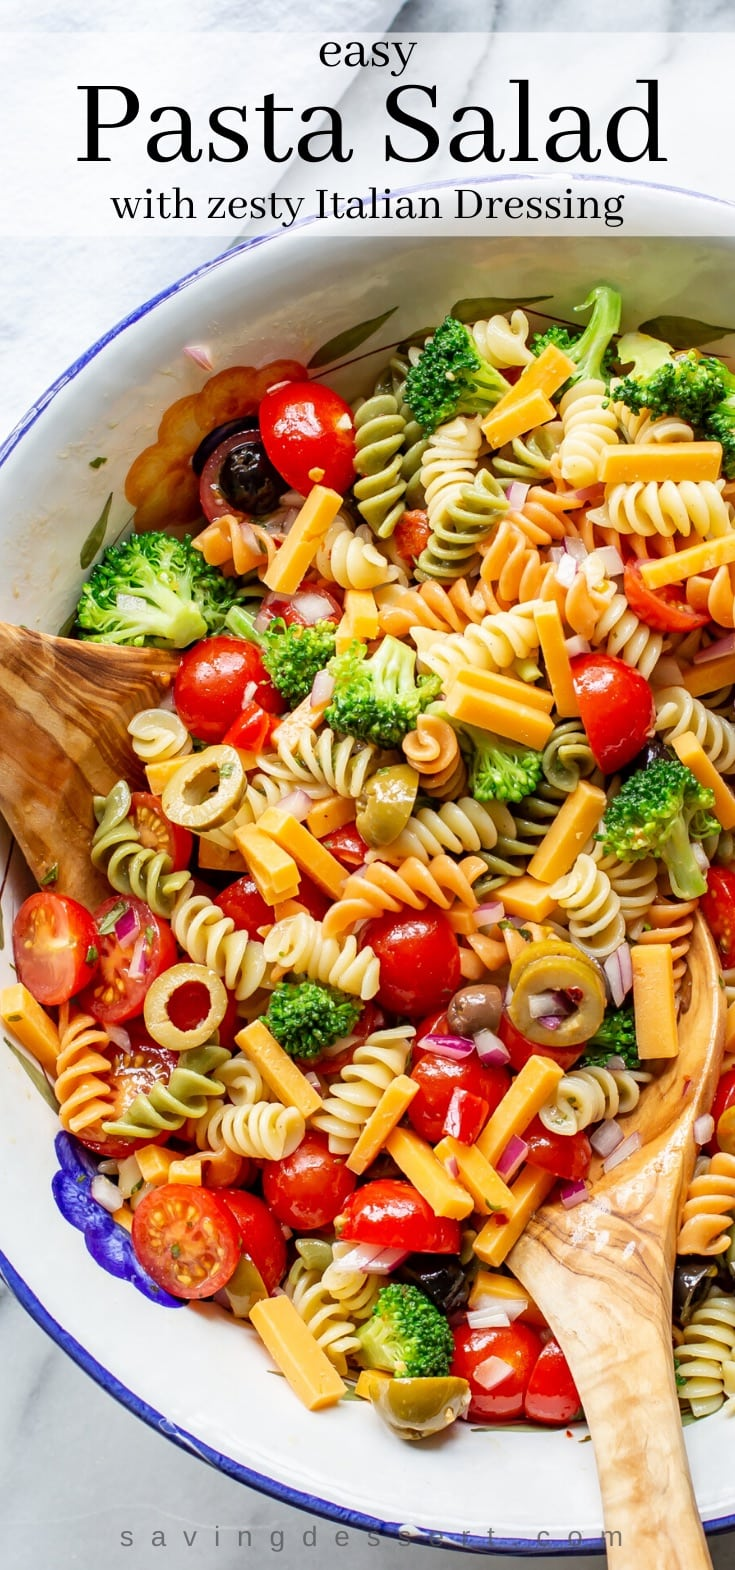 A large bowl of pasta salad with cheese, tomatoes and broccoli